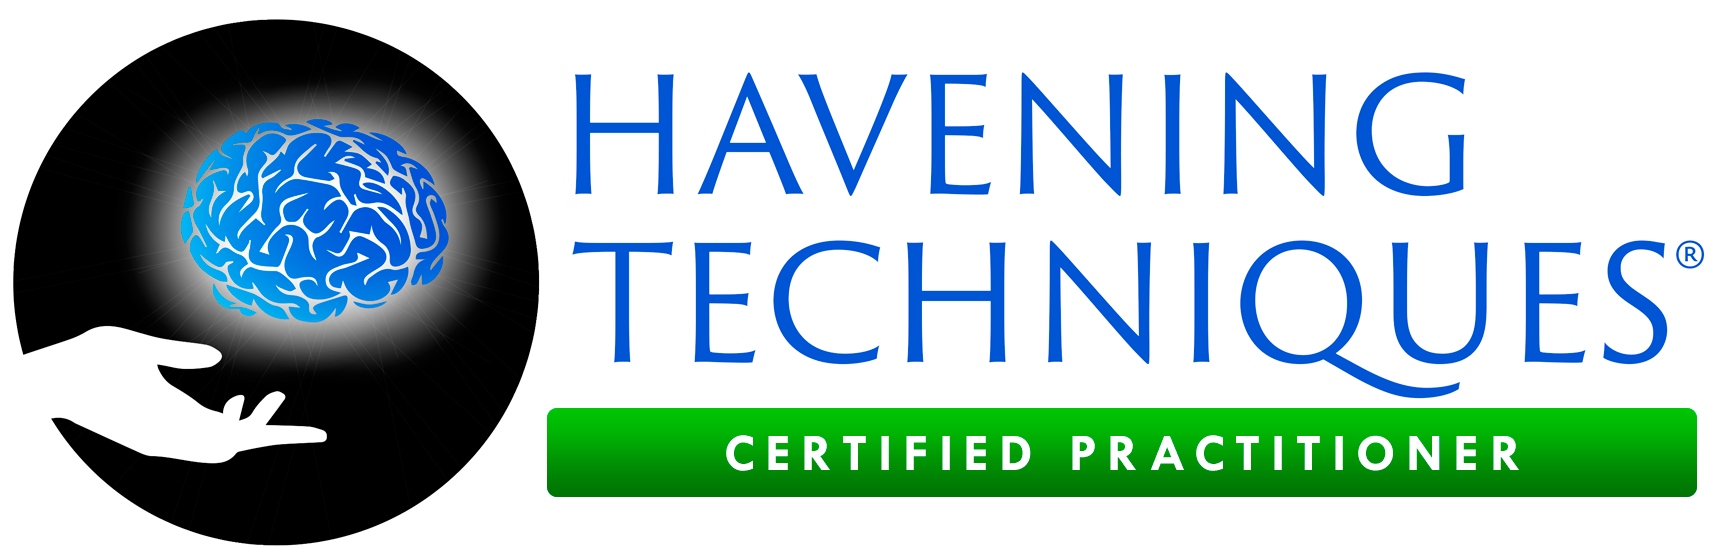 Havening Techniques Certified Practitioner